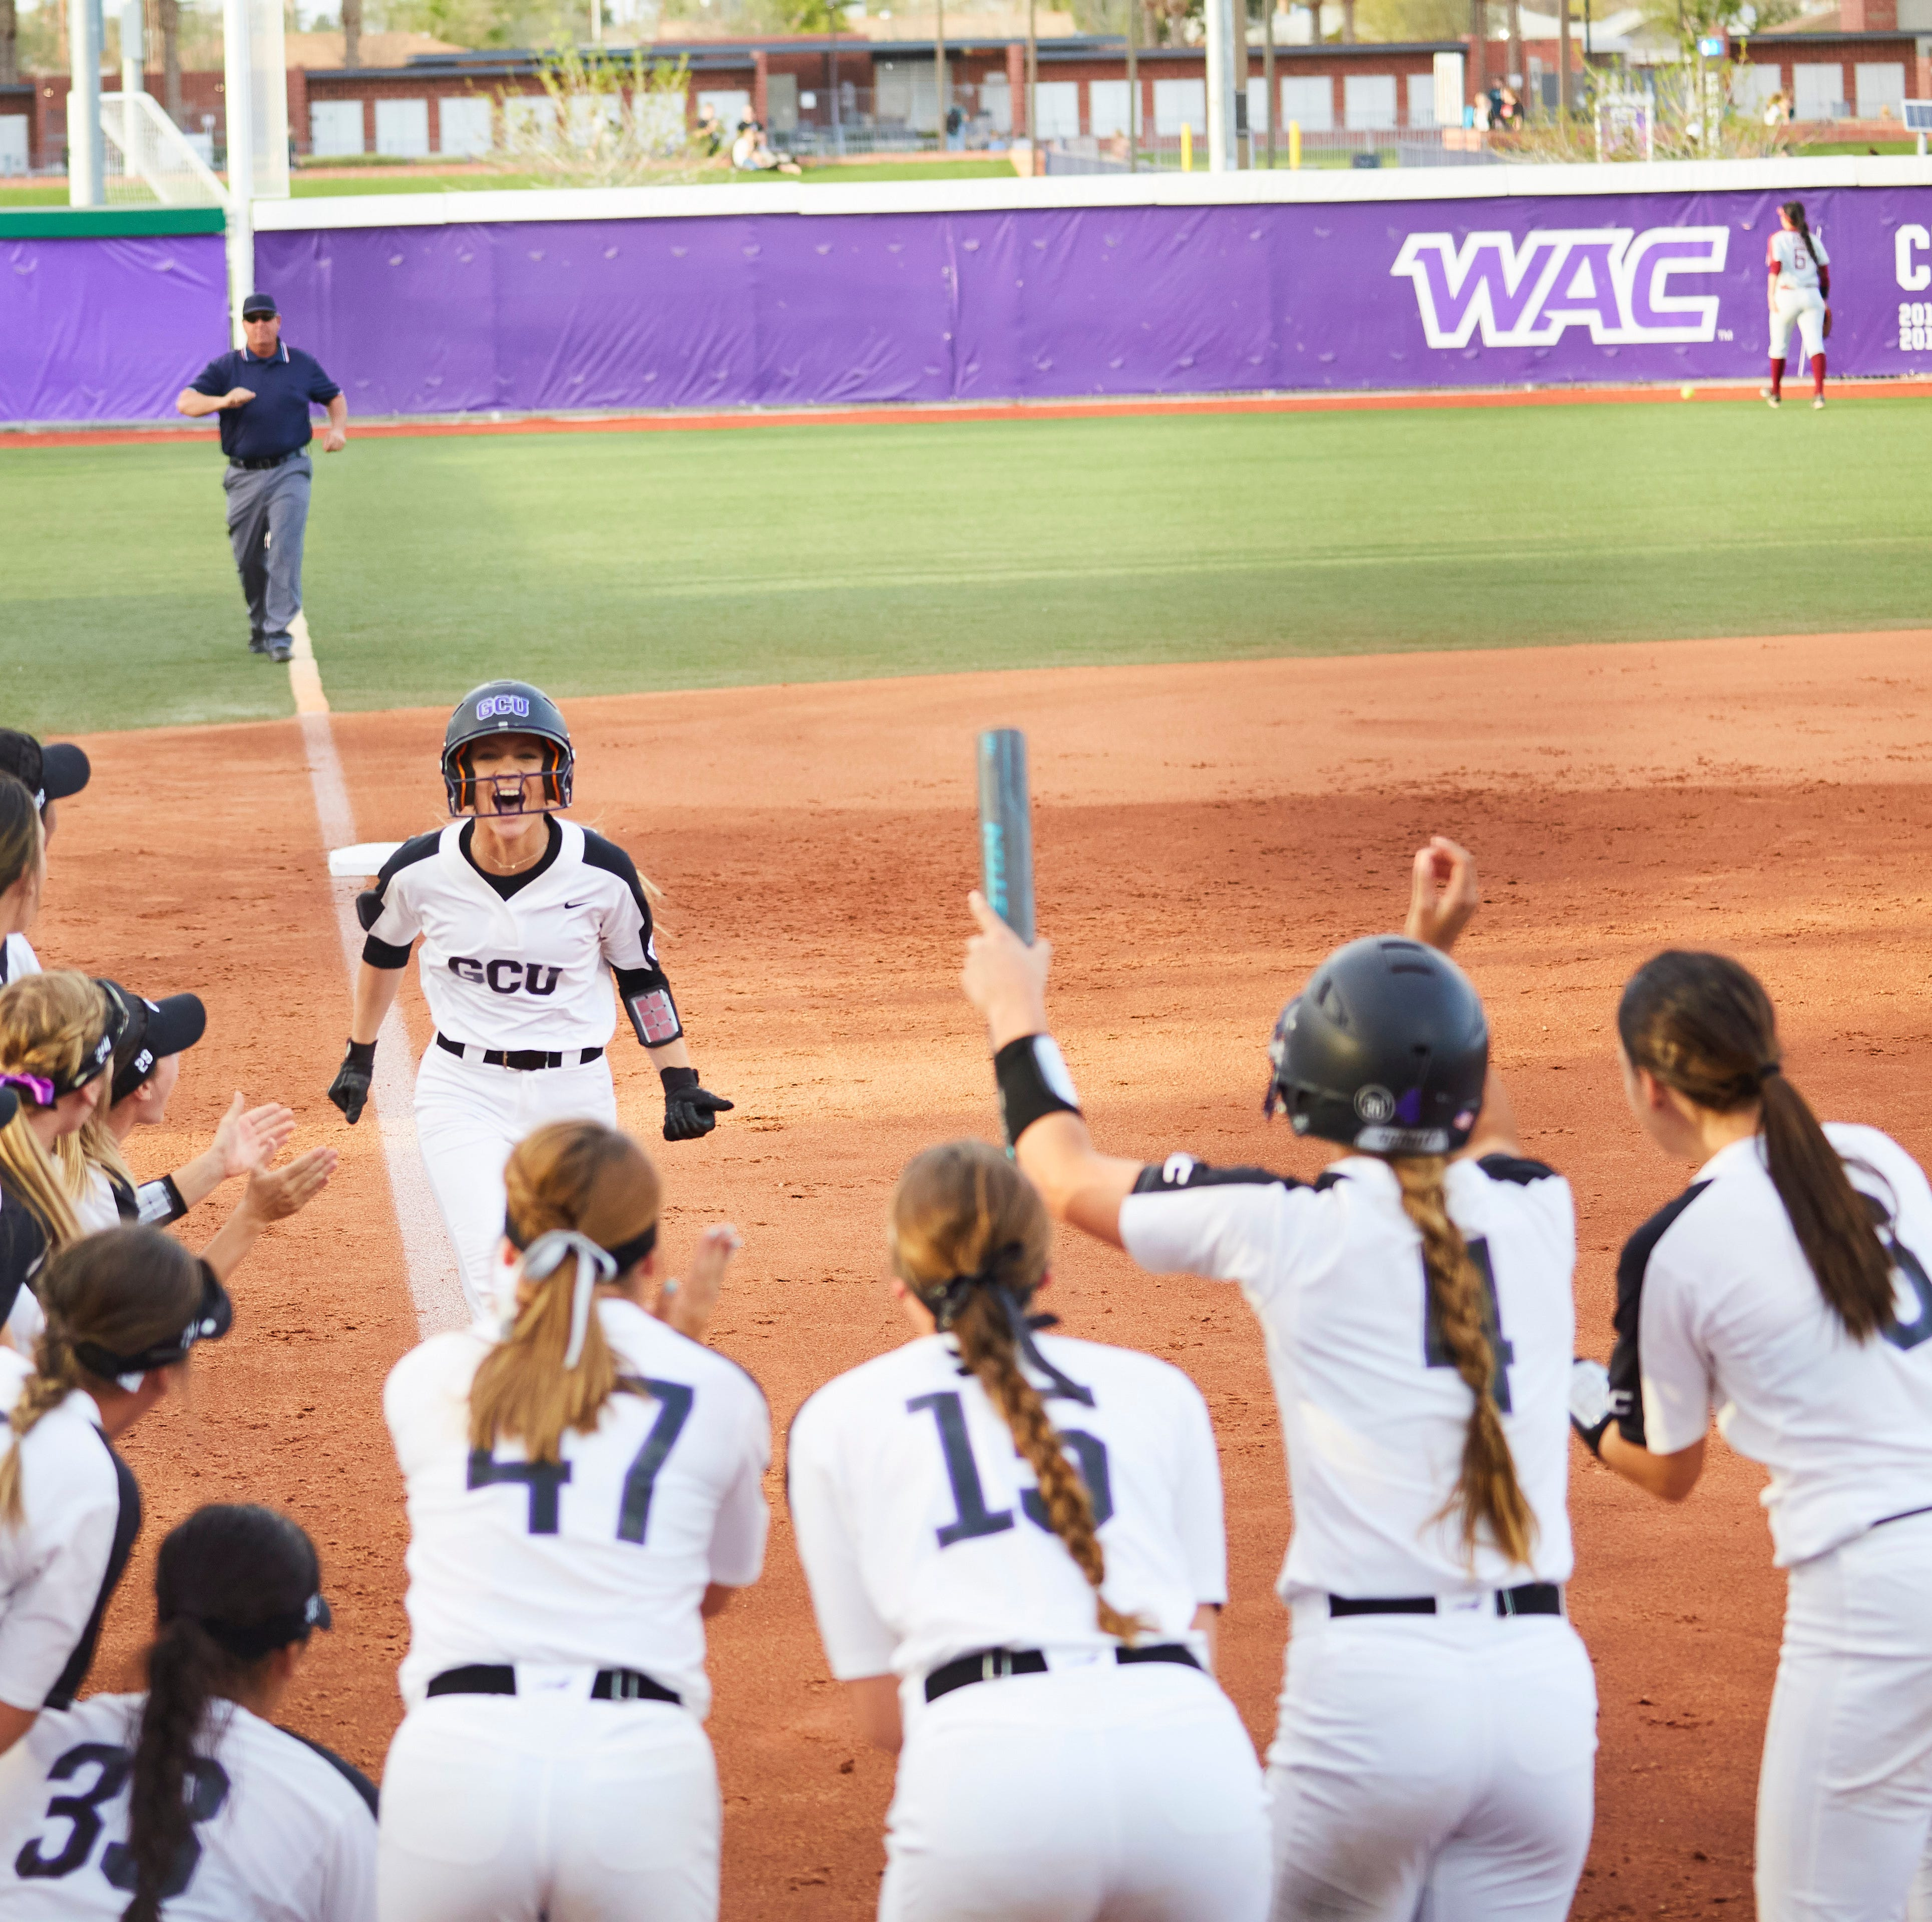 Softball becomes 1st GCU team to beat nation's No. 1 team since becoming Division I